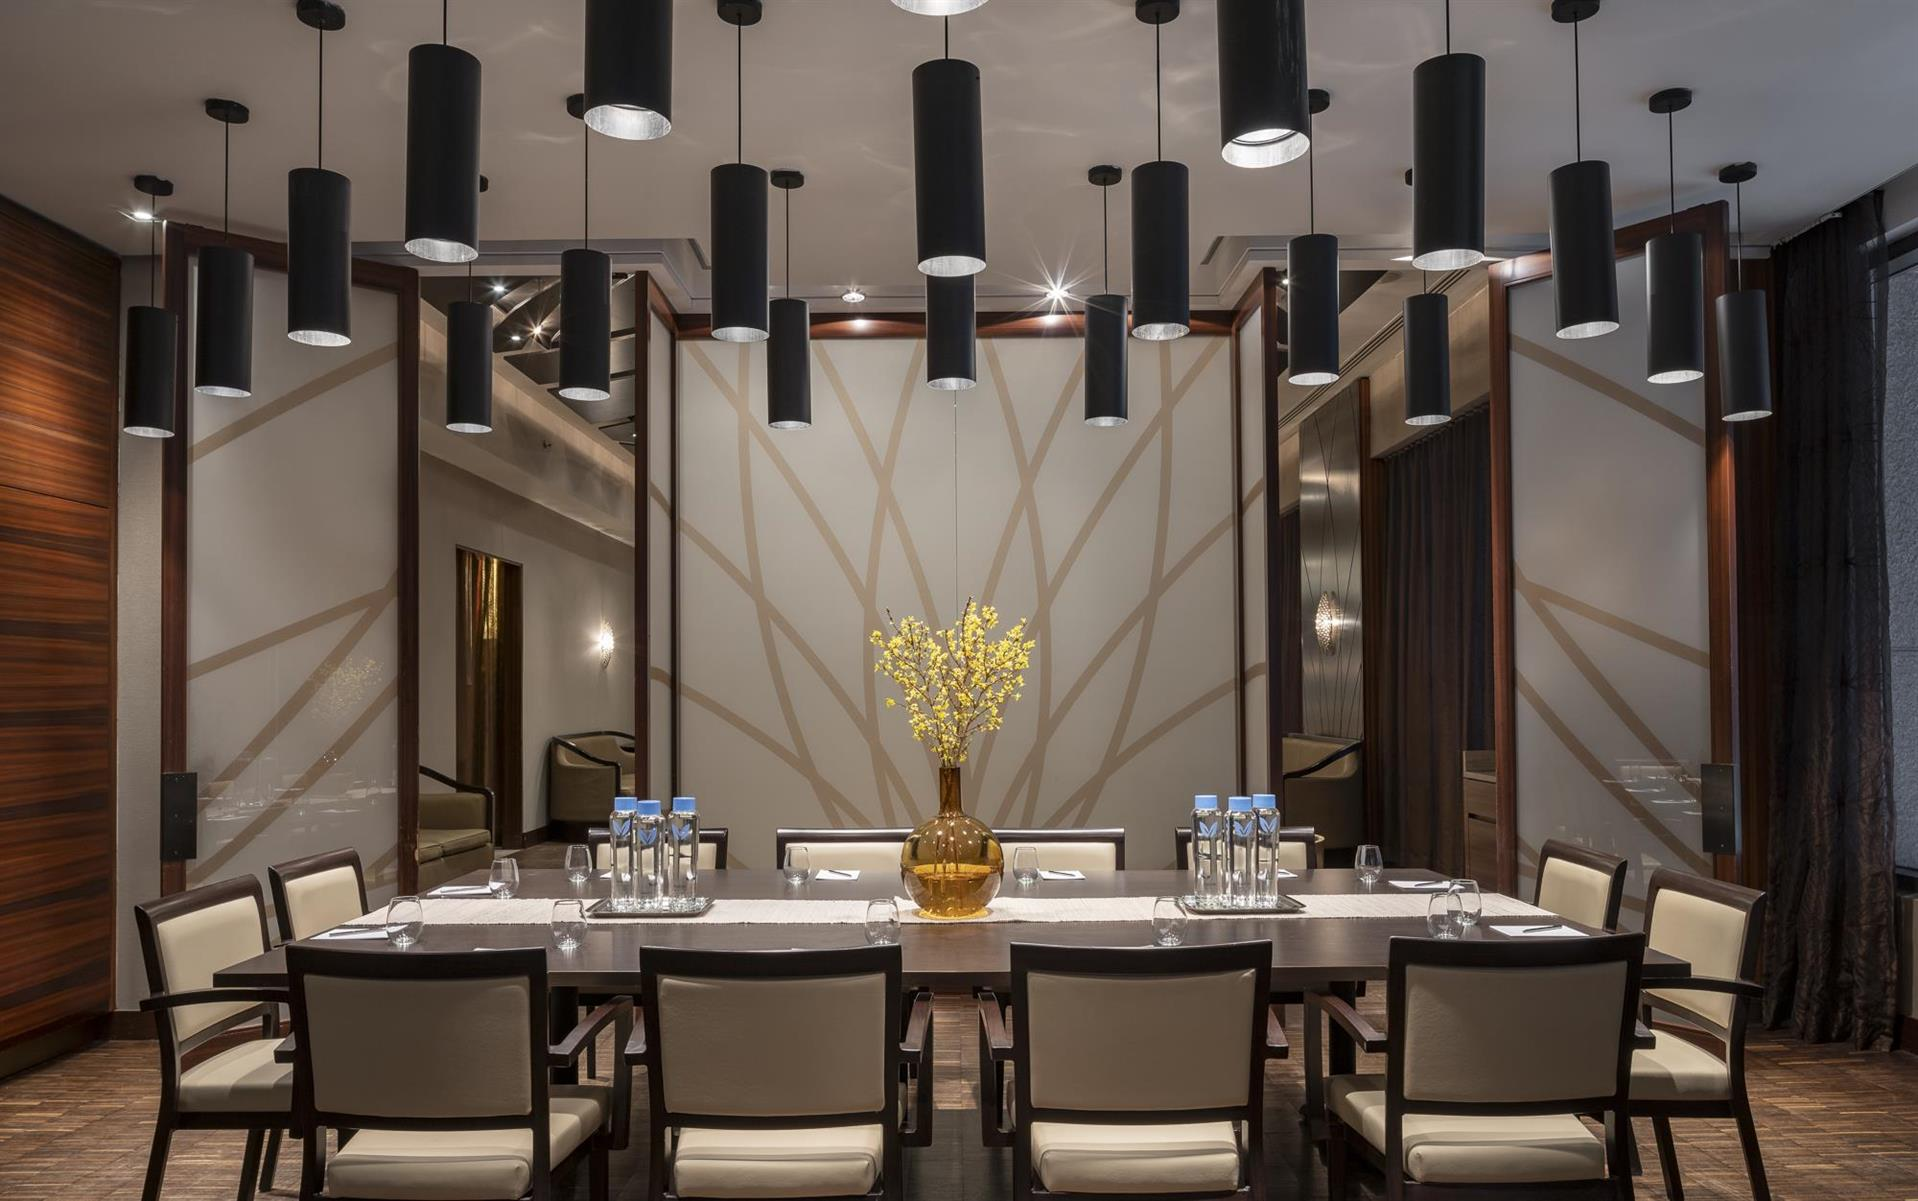 winter woodland home decor the collection.htm meetings and events at andaz wall street  new york  ny  us  andaz wall street  new york  ny